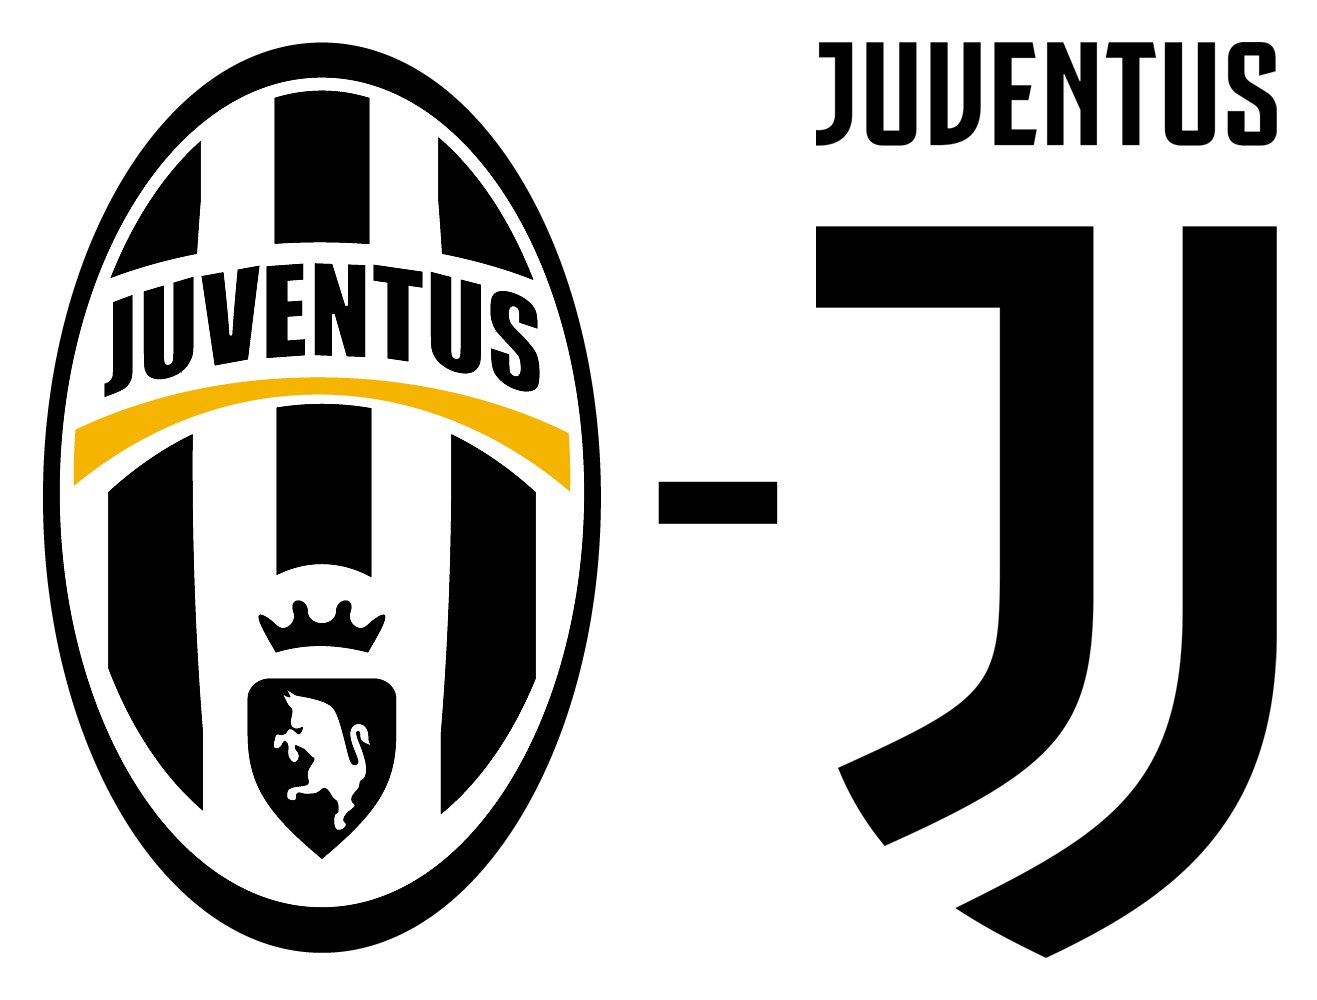 juventus logo juventus symbol meaning history and evolution. Black Bedroom Furniture Sets. Home Design Ideas